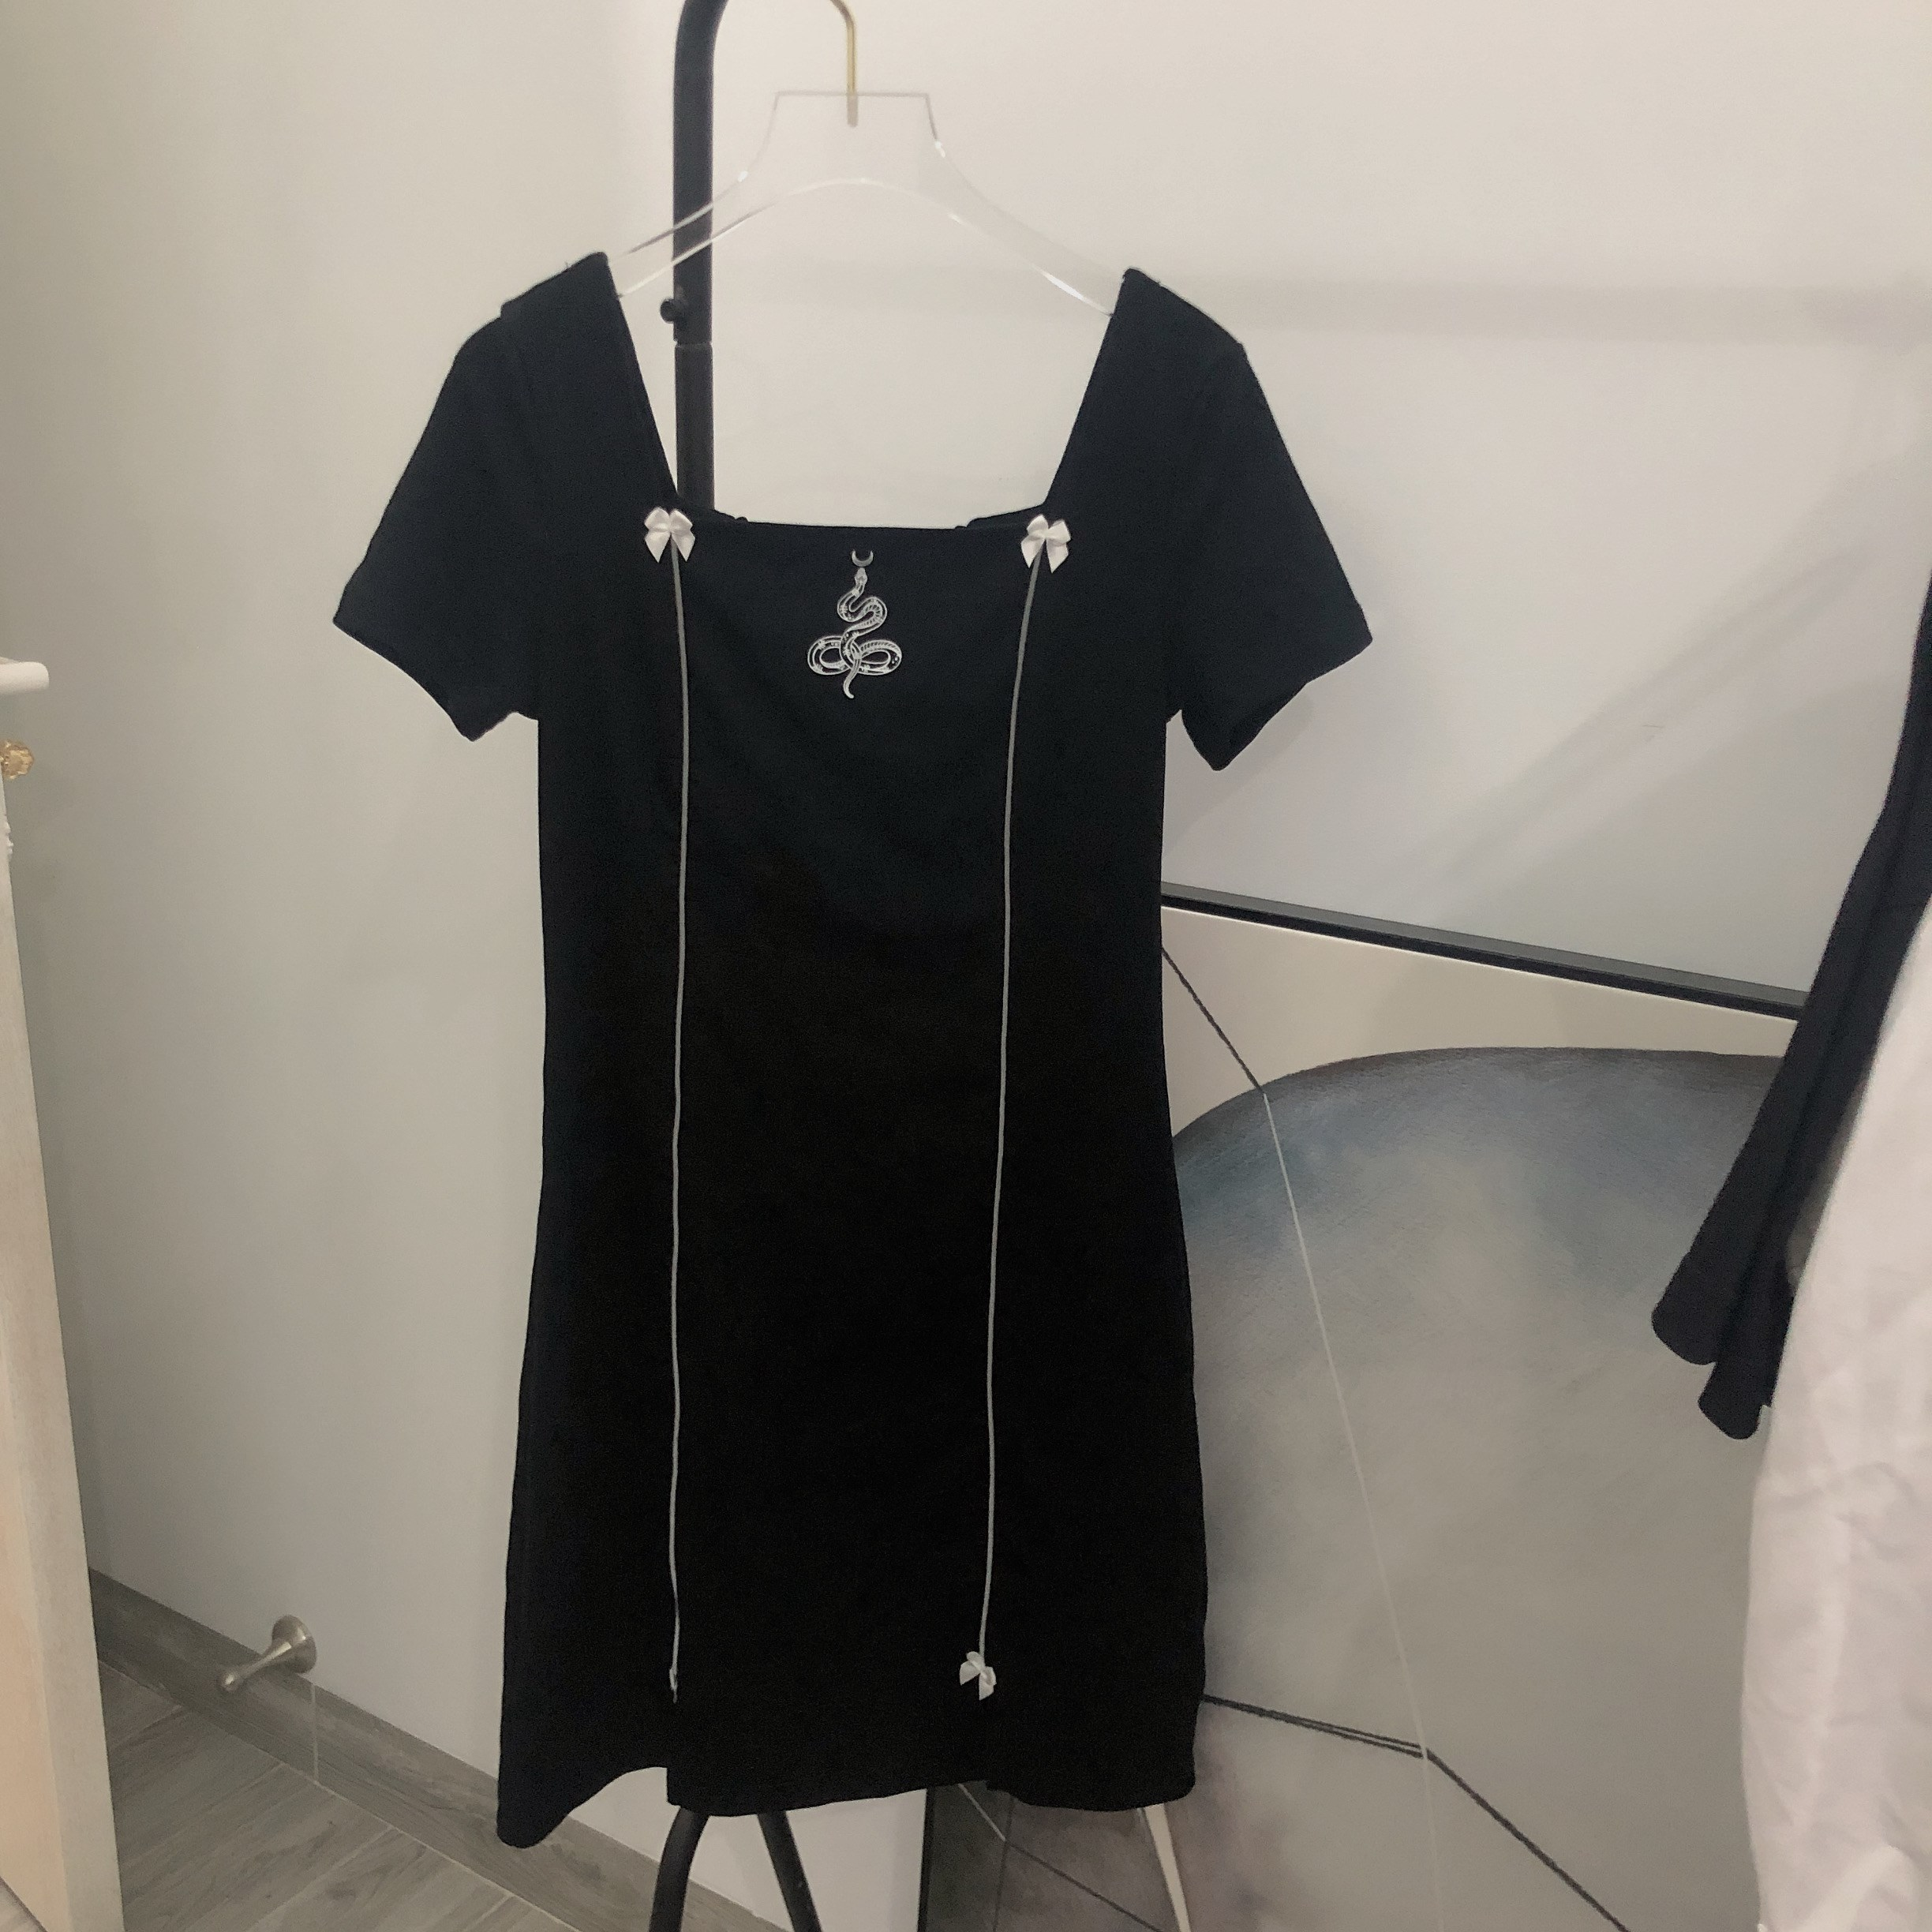 Spring 2020 new Korean version of slim and elegant black square collar lace up short sleeve skirt dress for women